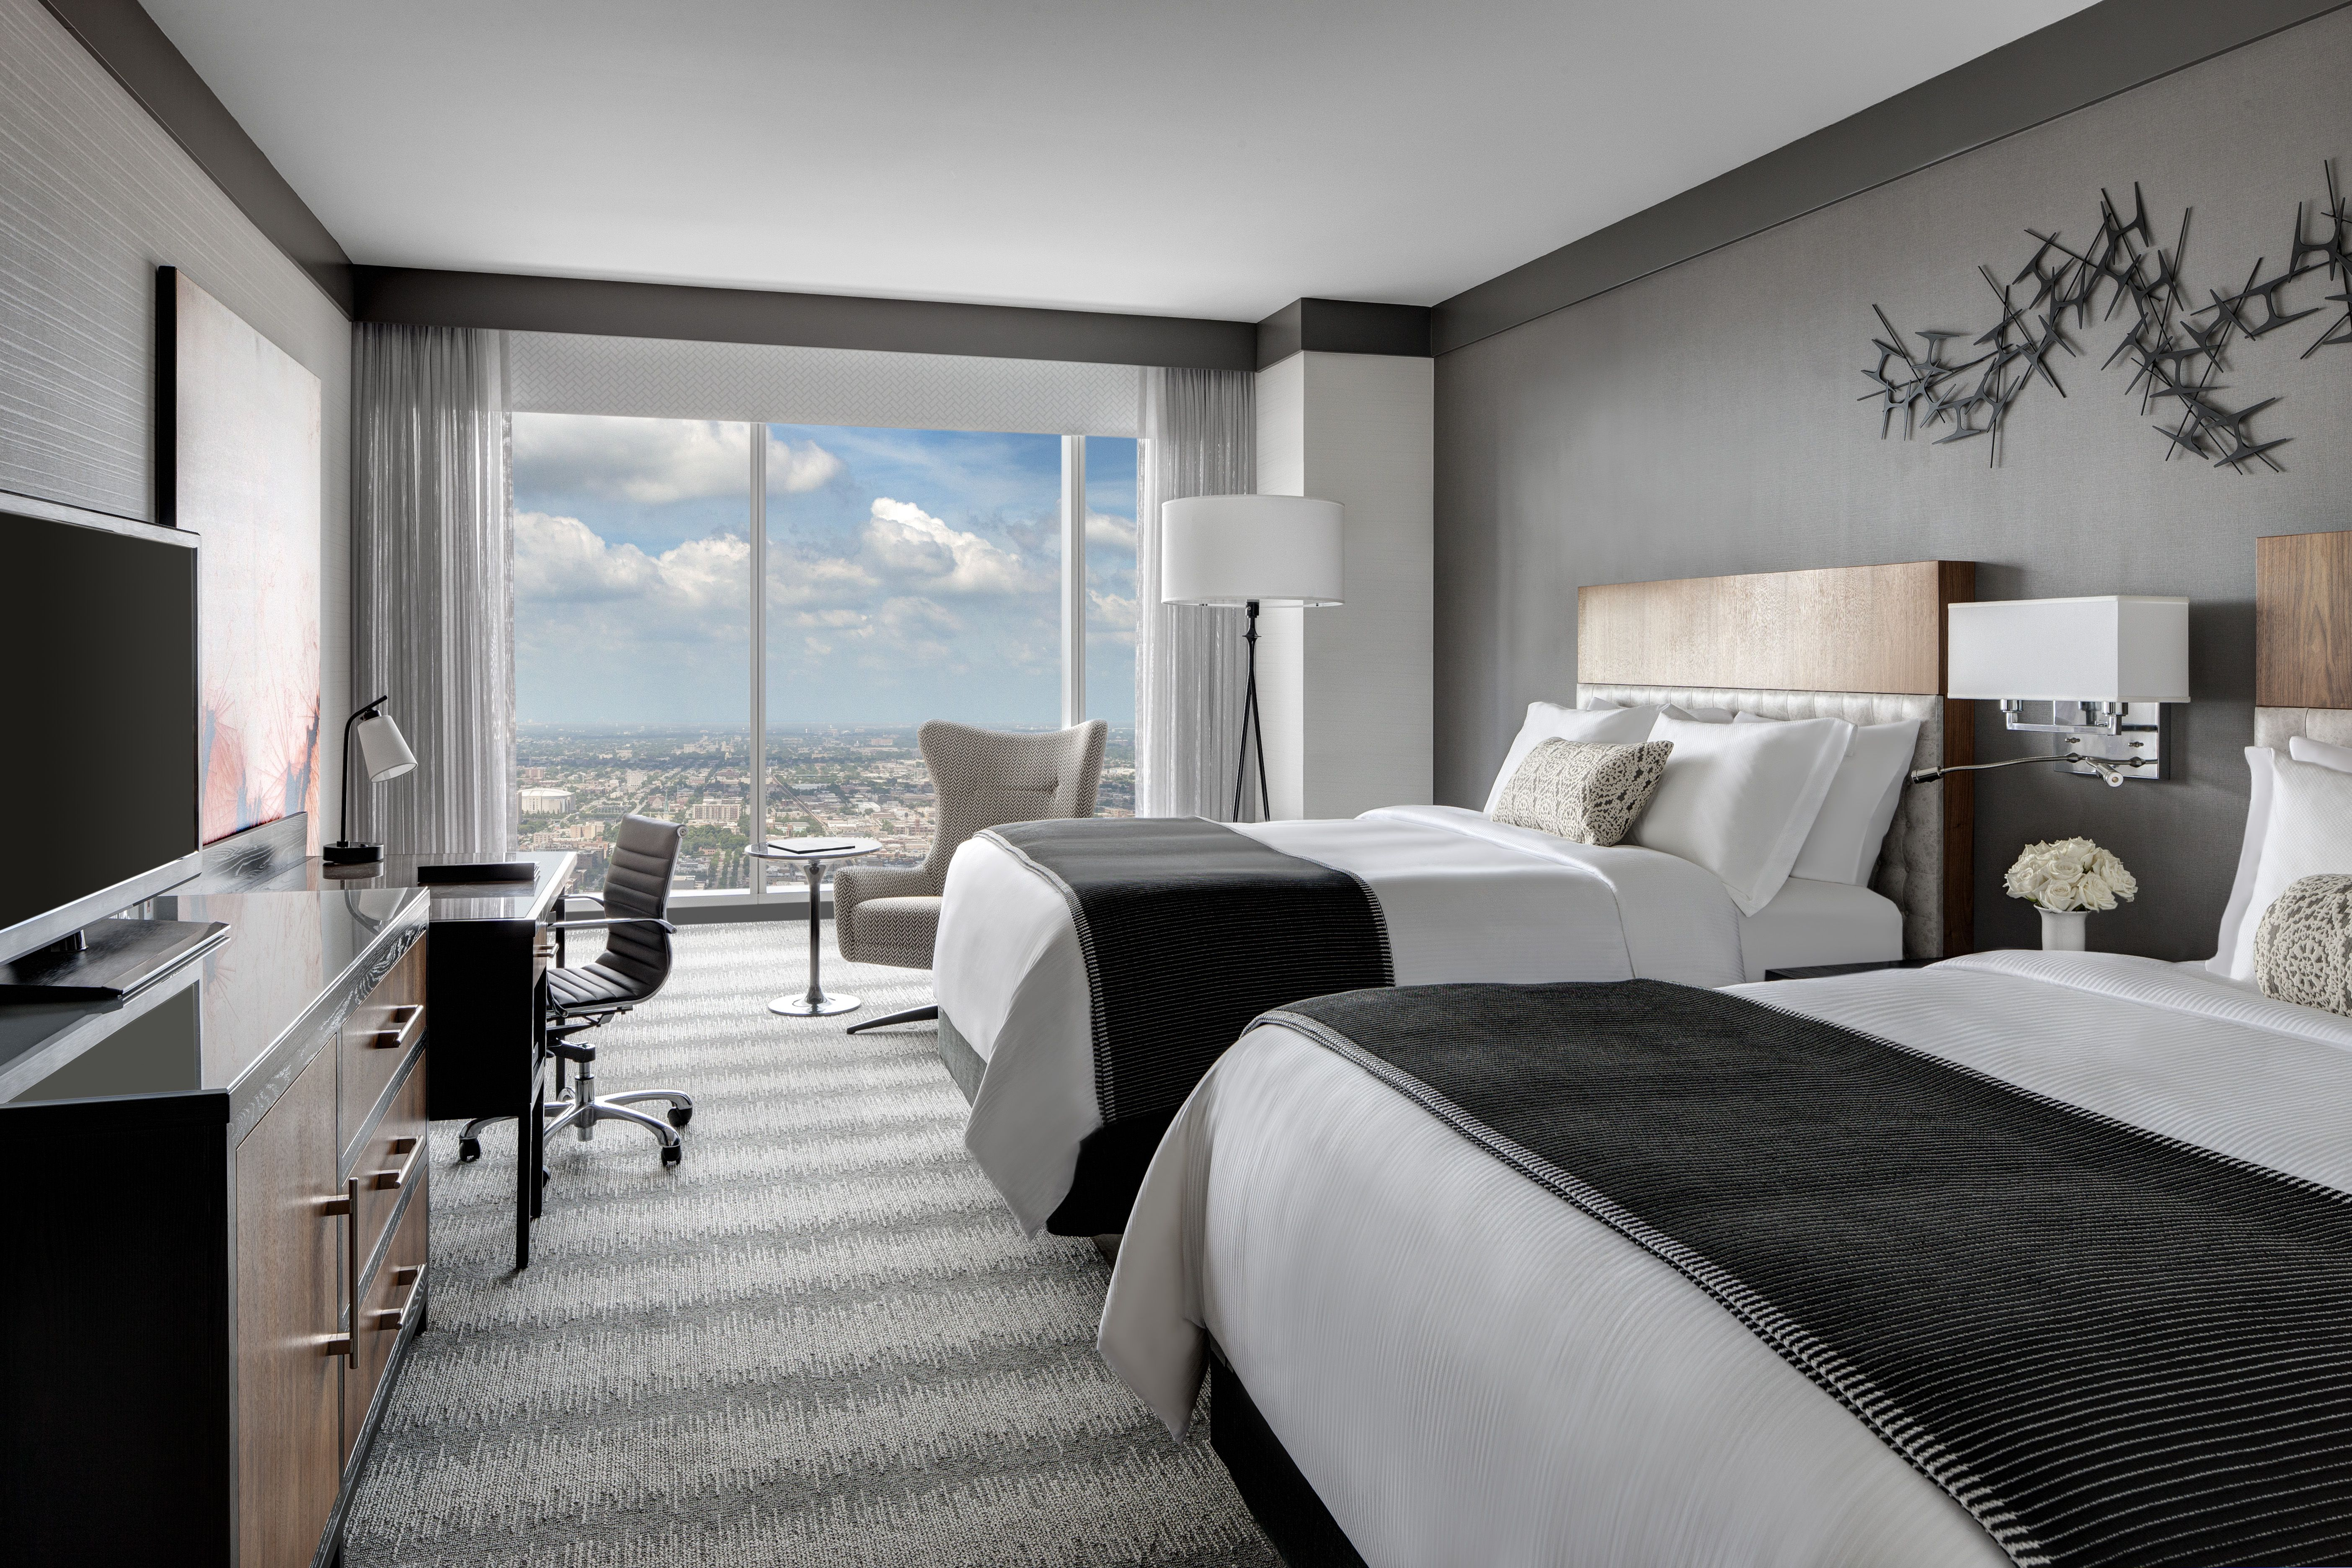 jparker meet hotel il lincoln room eat drink the chicago lakeview patio in at and